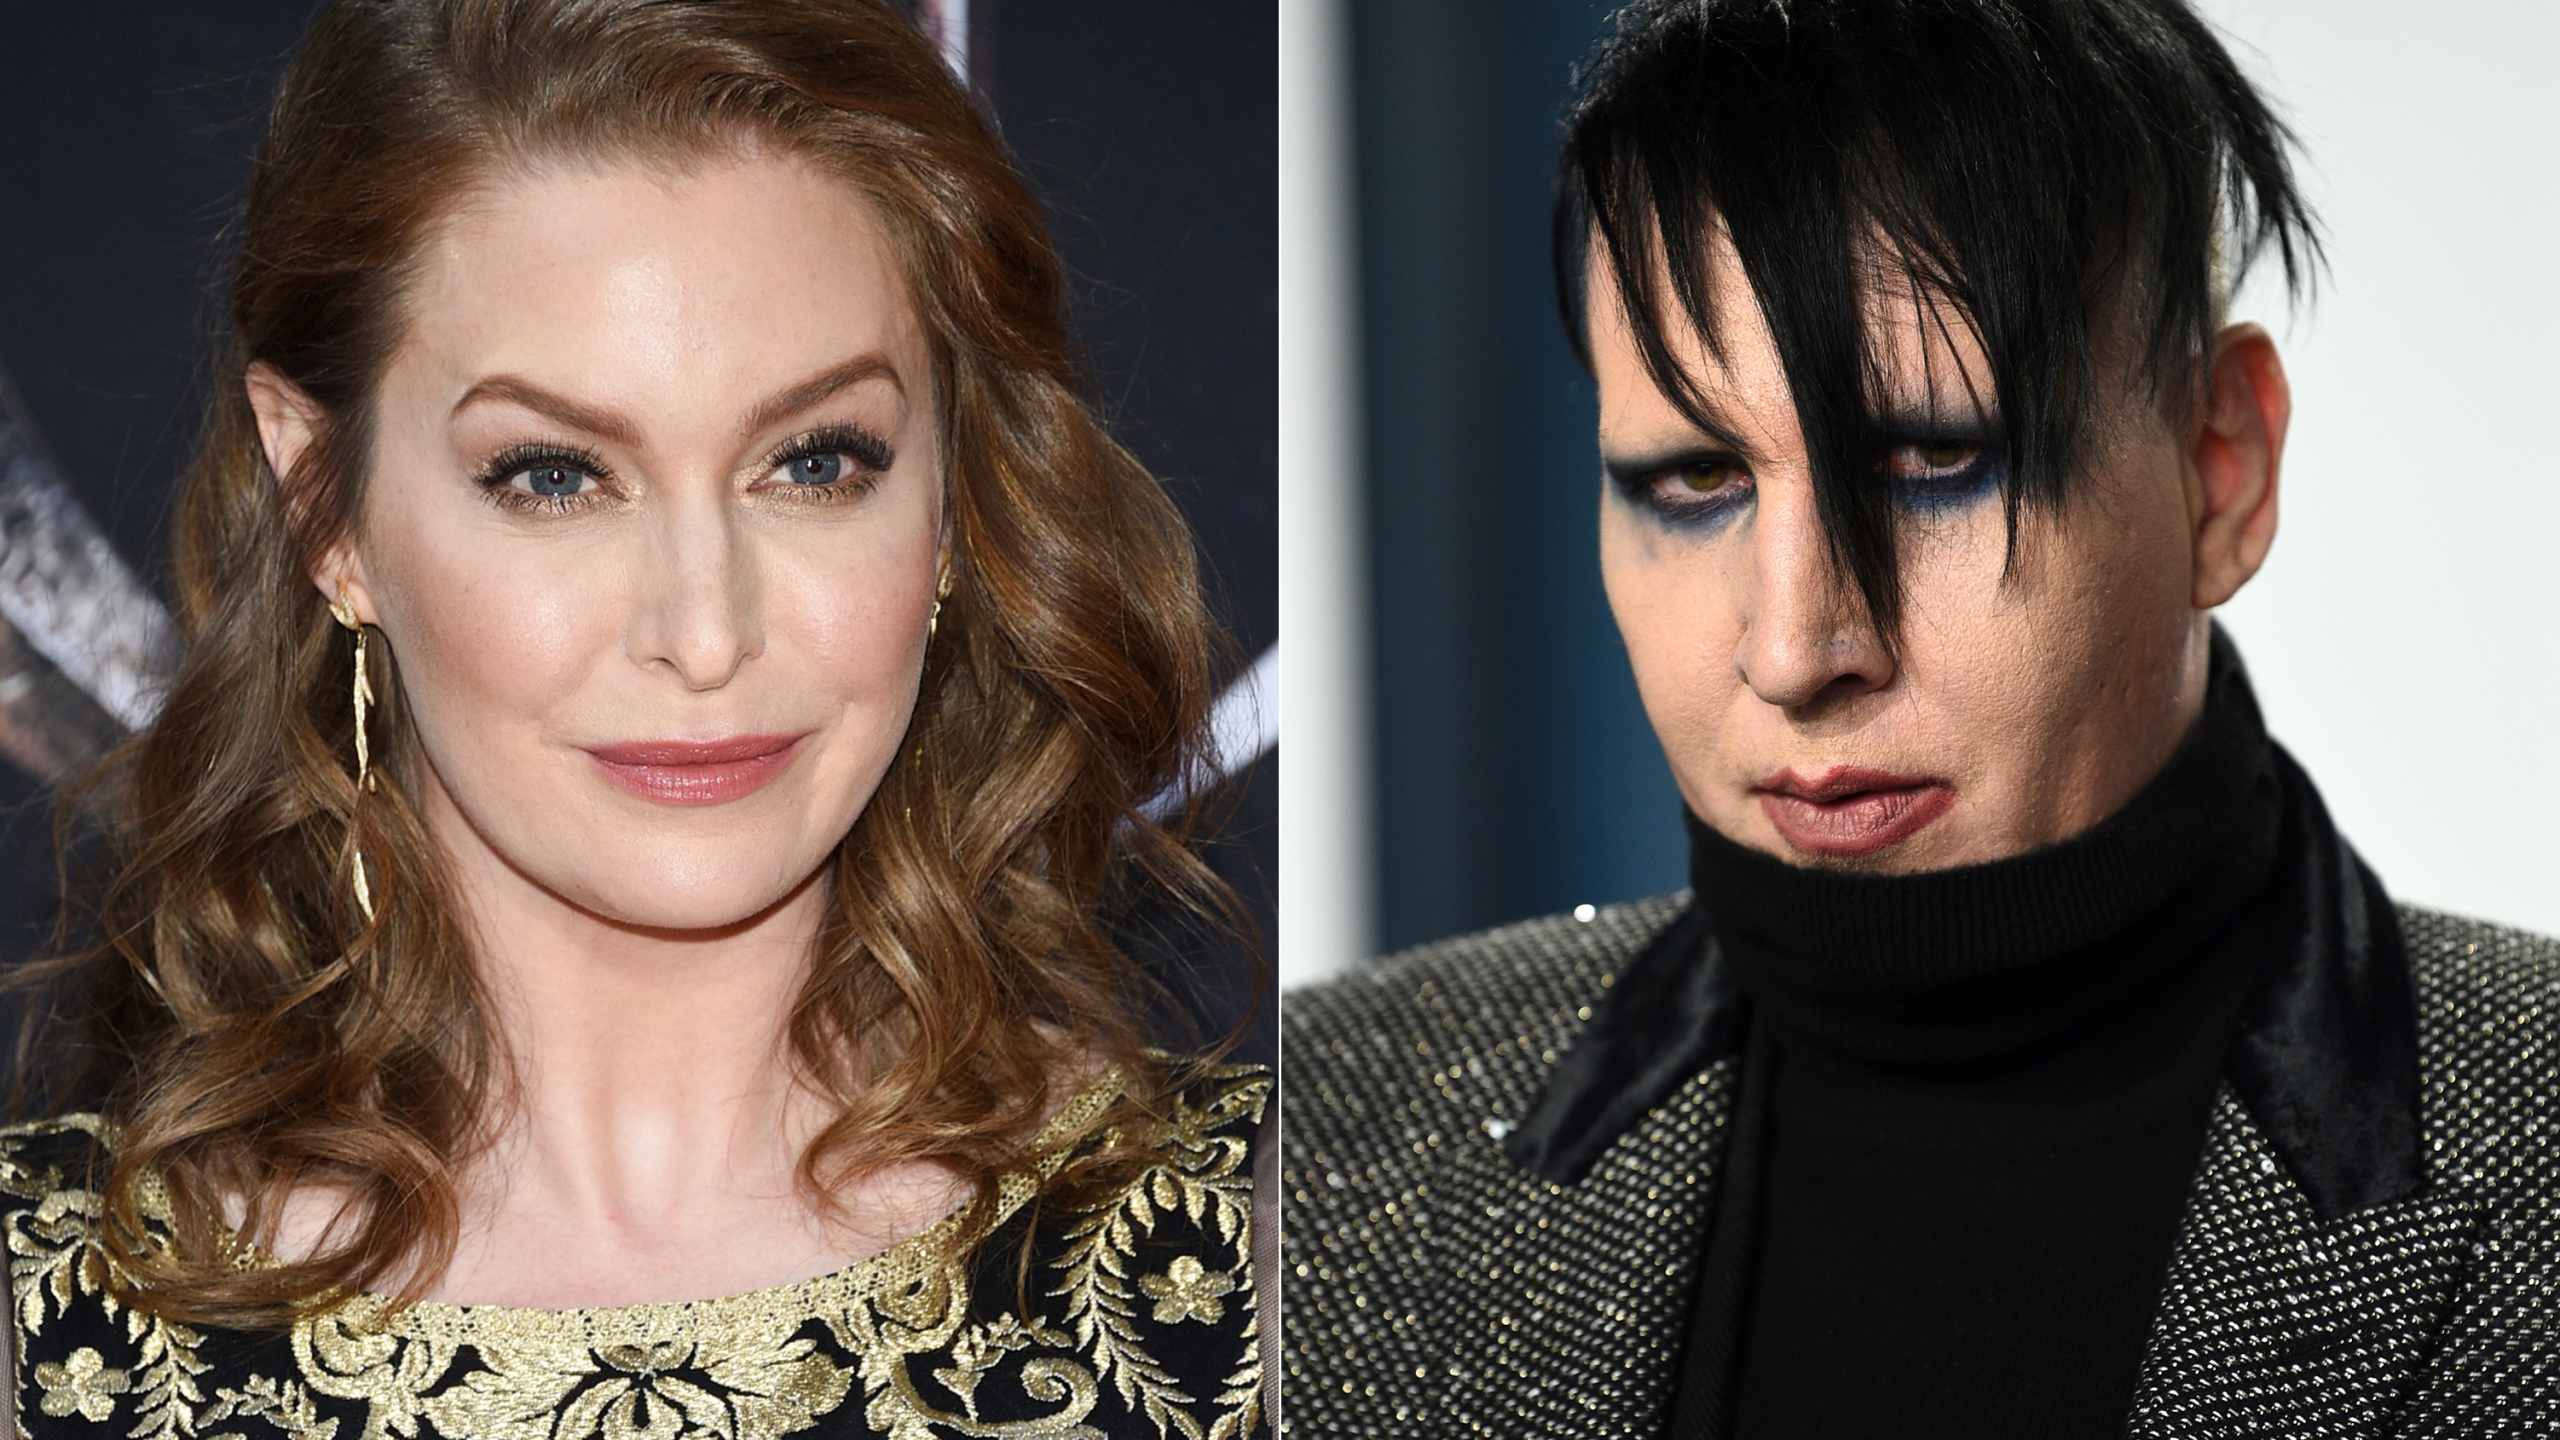 """In this combination photo, actress Esmé Bianco appears at HBO's """"Game of Thrones"""" final season premiere in New York on April 3, 2019, left, and musician Marilyn Manson appears at the Vanity Fair Oscar Party in Beverly Hills, Calif. on Feb. 9, 2020. (Photos by Evan Agostini/Invision/AP)"""